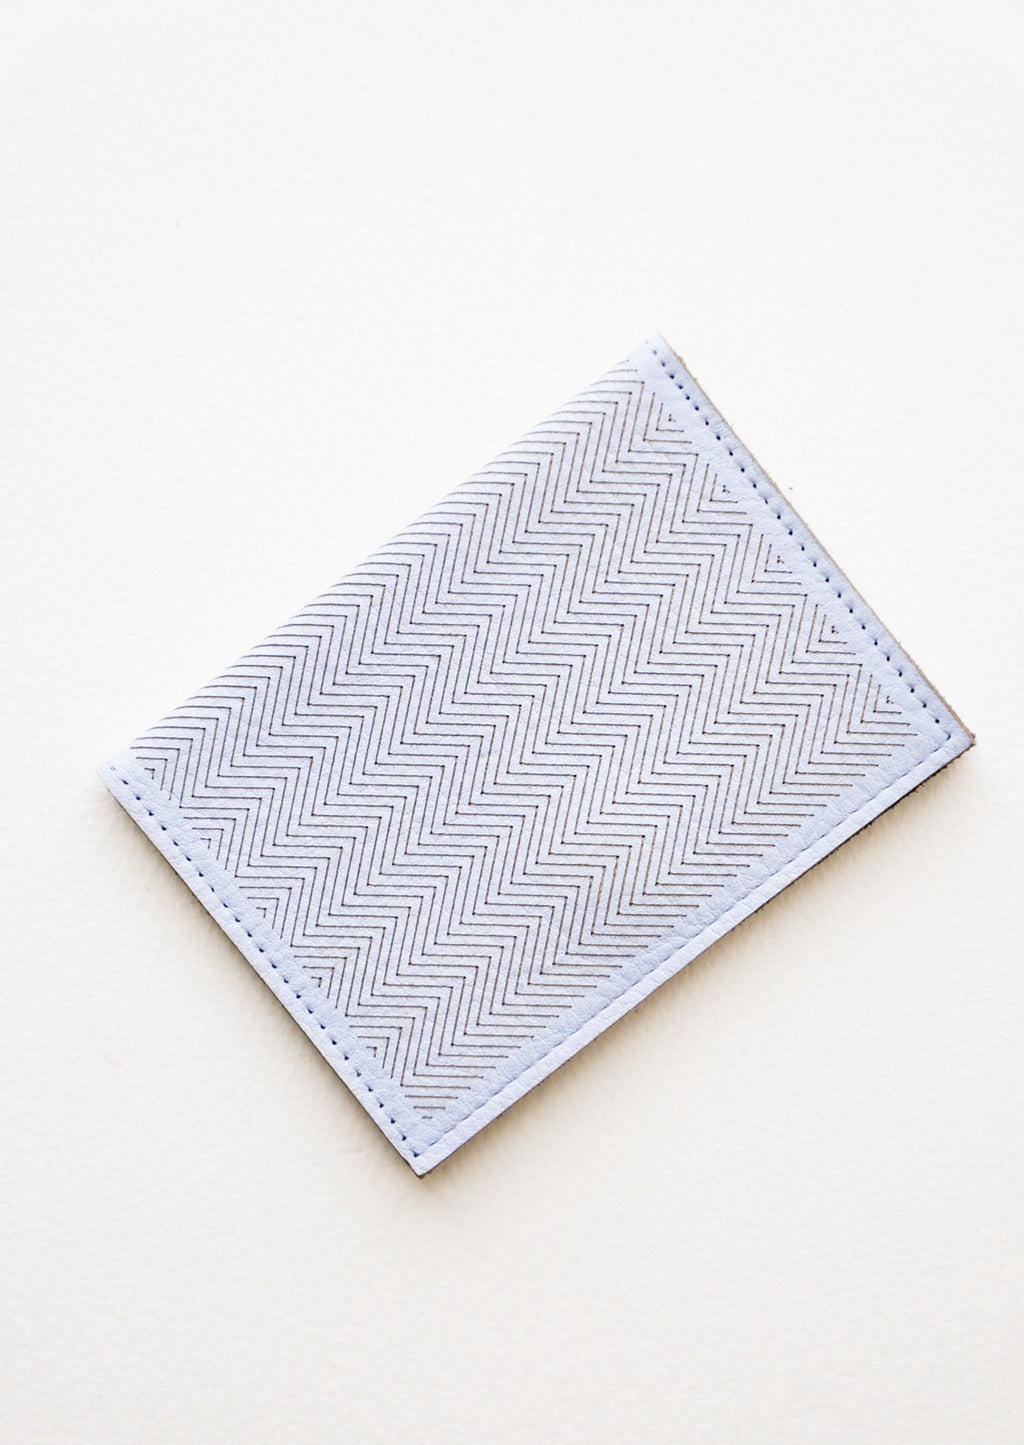 Dusty Blue: Slim light blue leather wallet with two interior slip pockets that folds closed with a snap, shown closed with zig zag etched pattern.